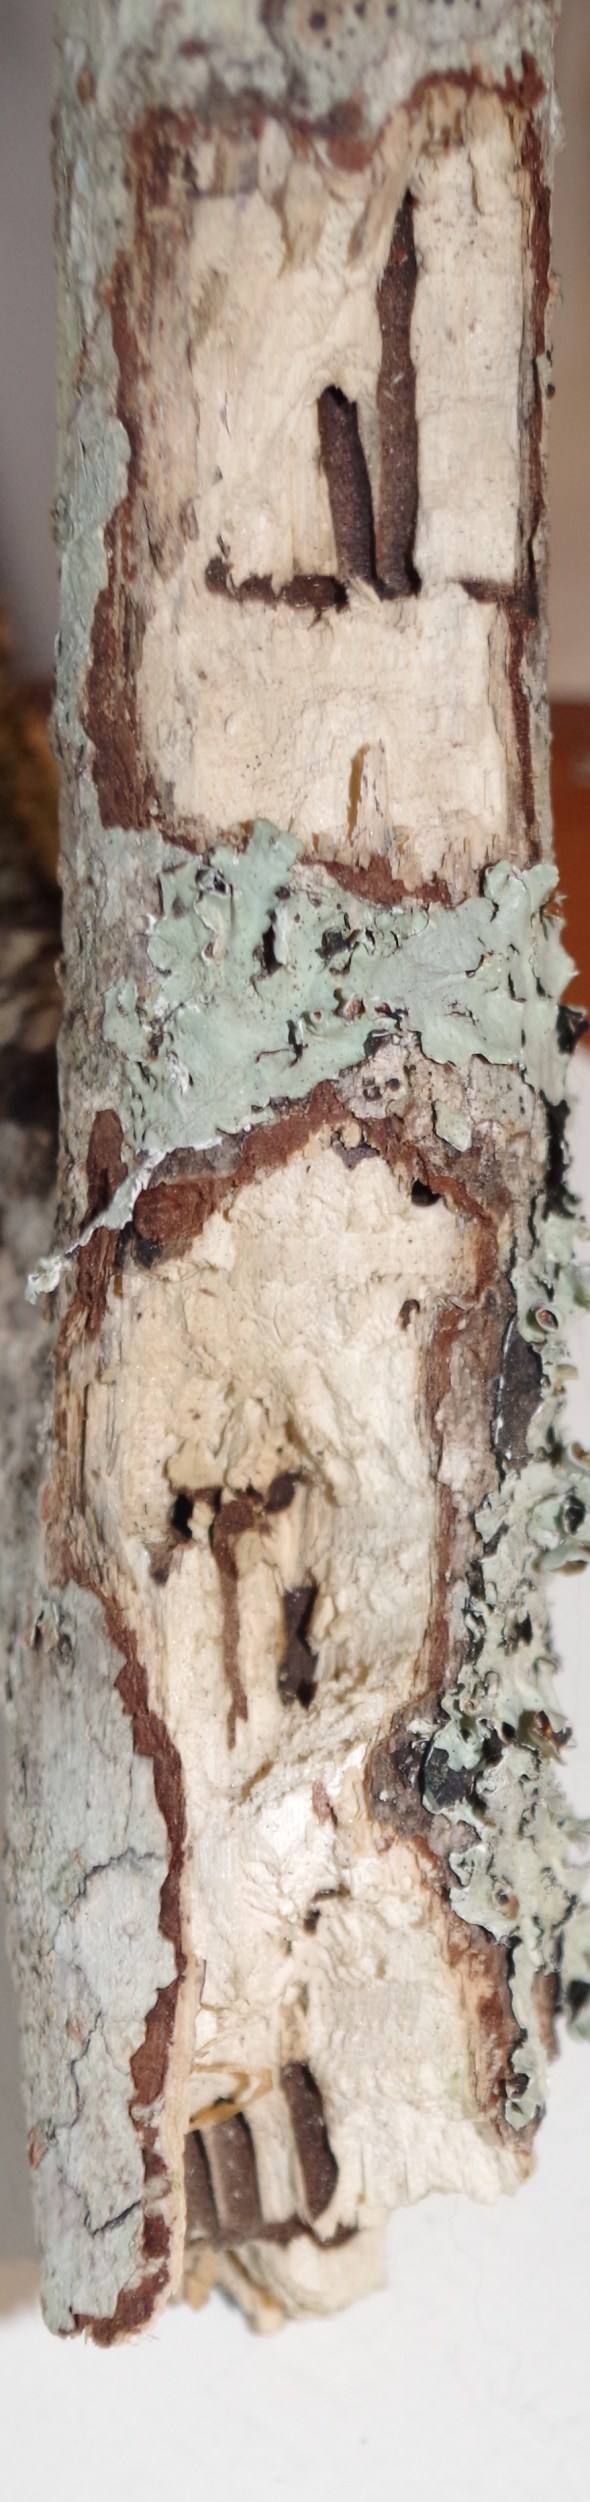 """Close-up of 2"""" diameter limb that apparently broke off while being fed upon"""